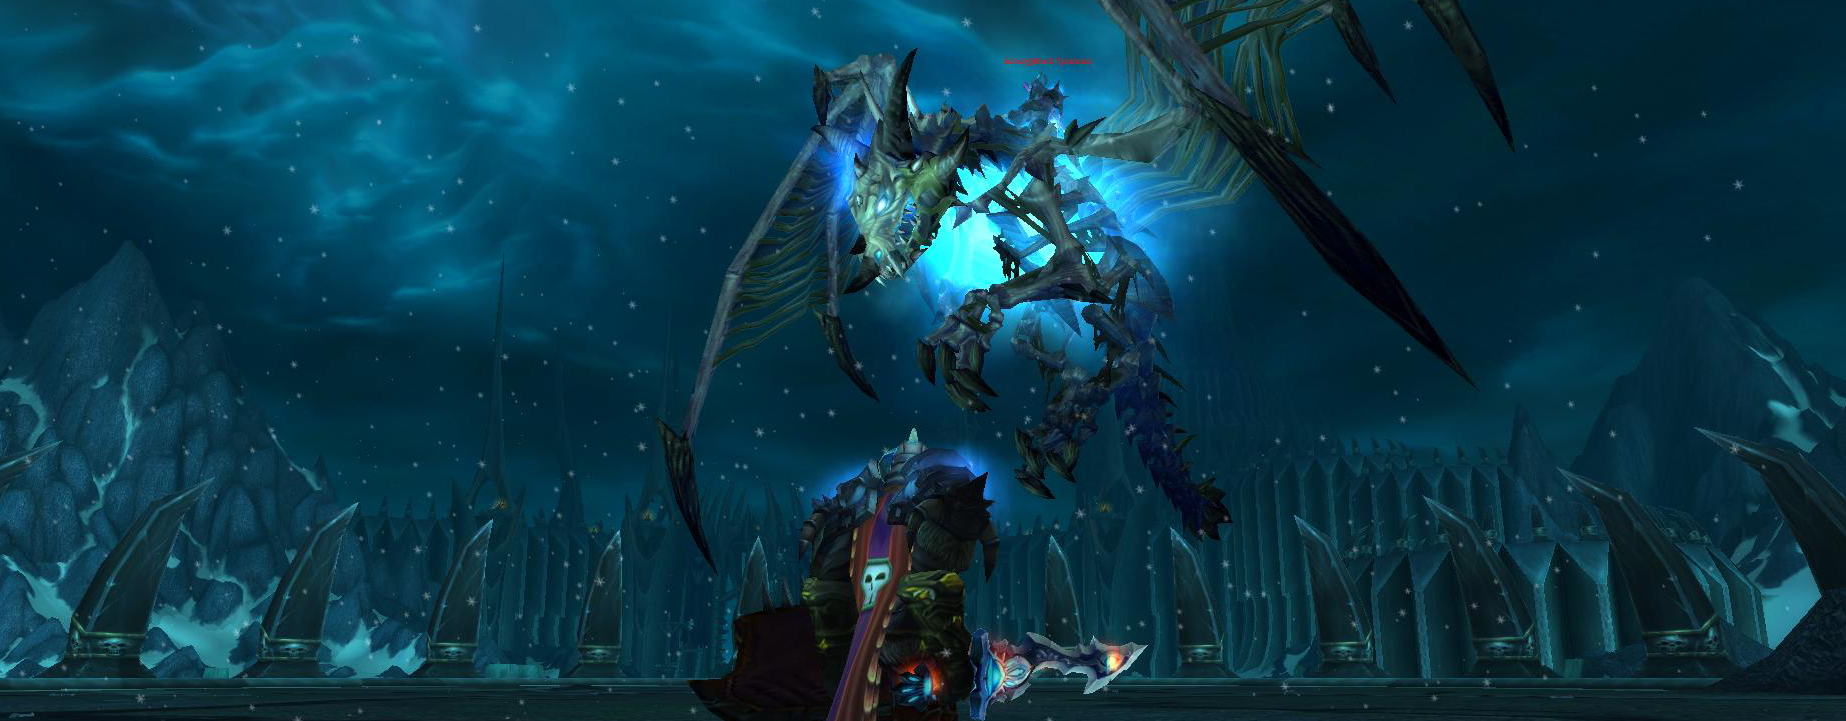 A paladin observes an undead dragon.